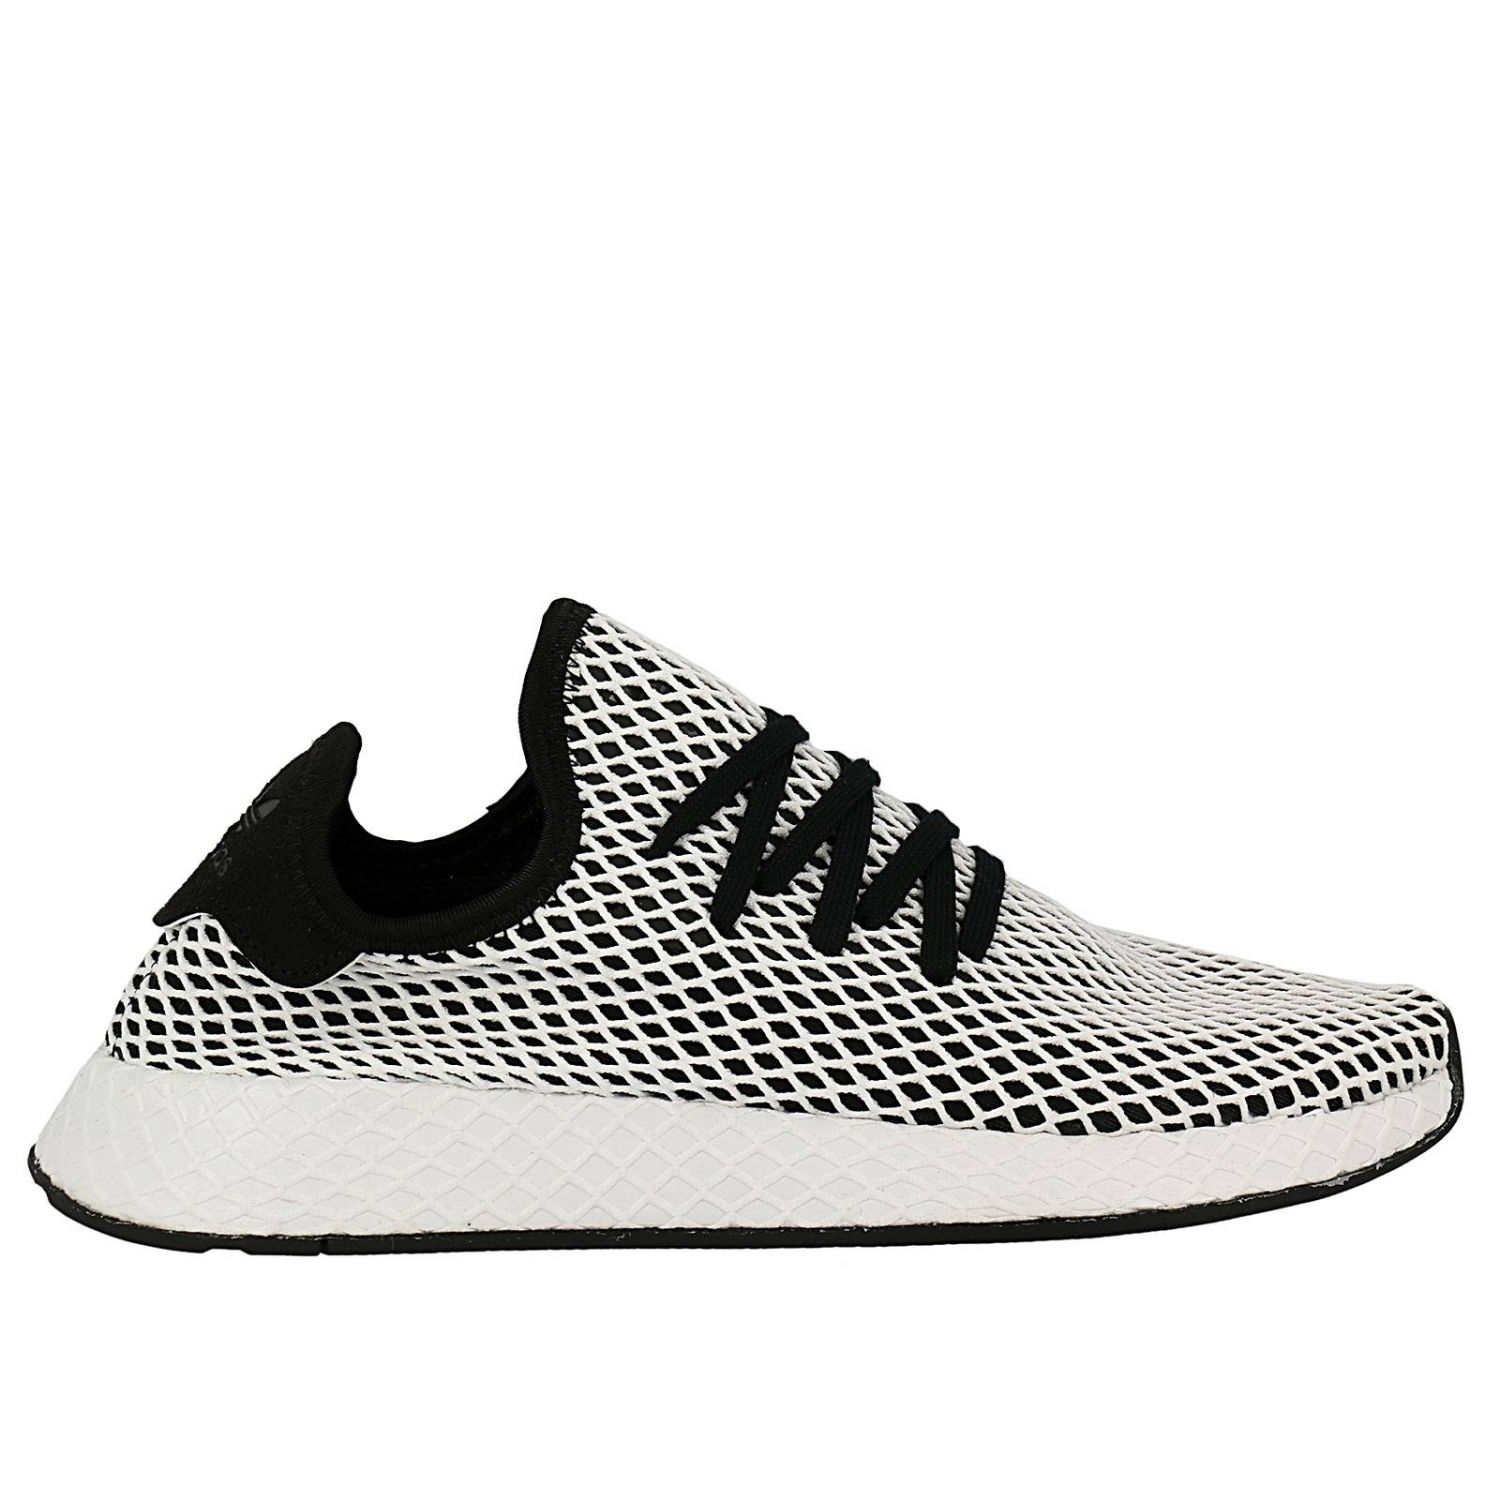 Adidas Deerupt Runner sneakers in knit and mesh stretch net effect